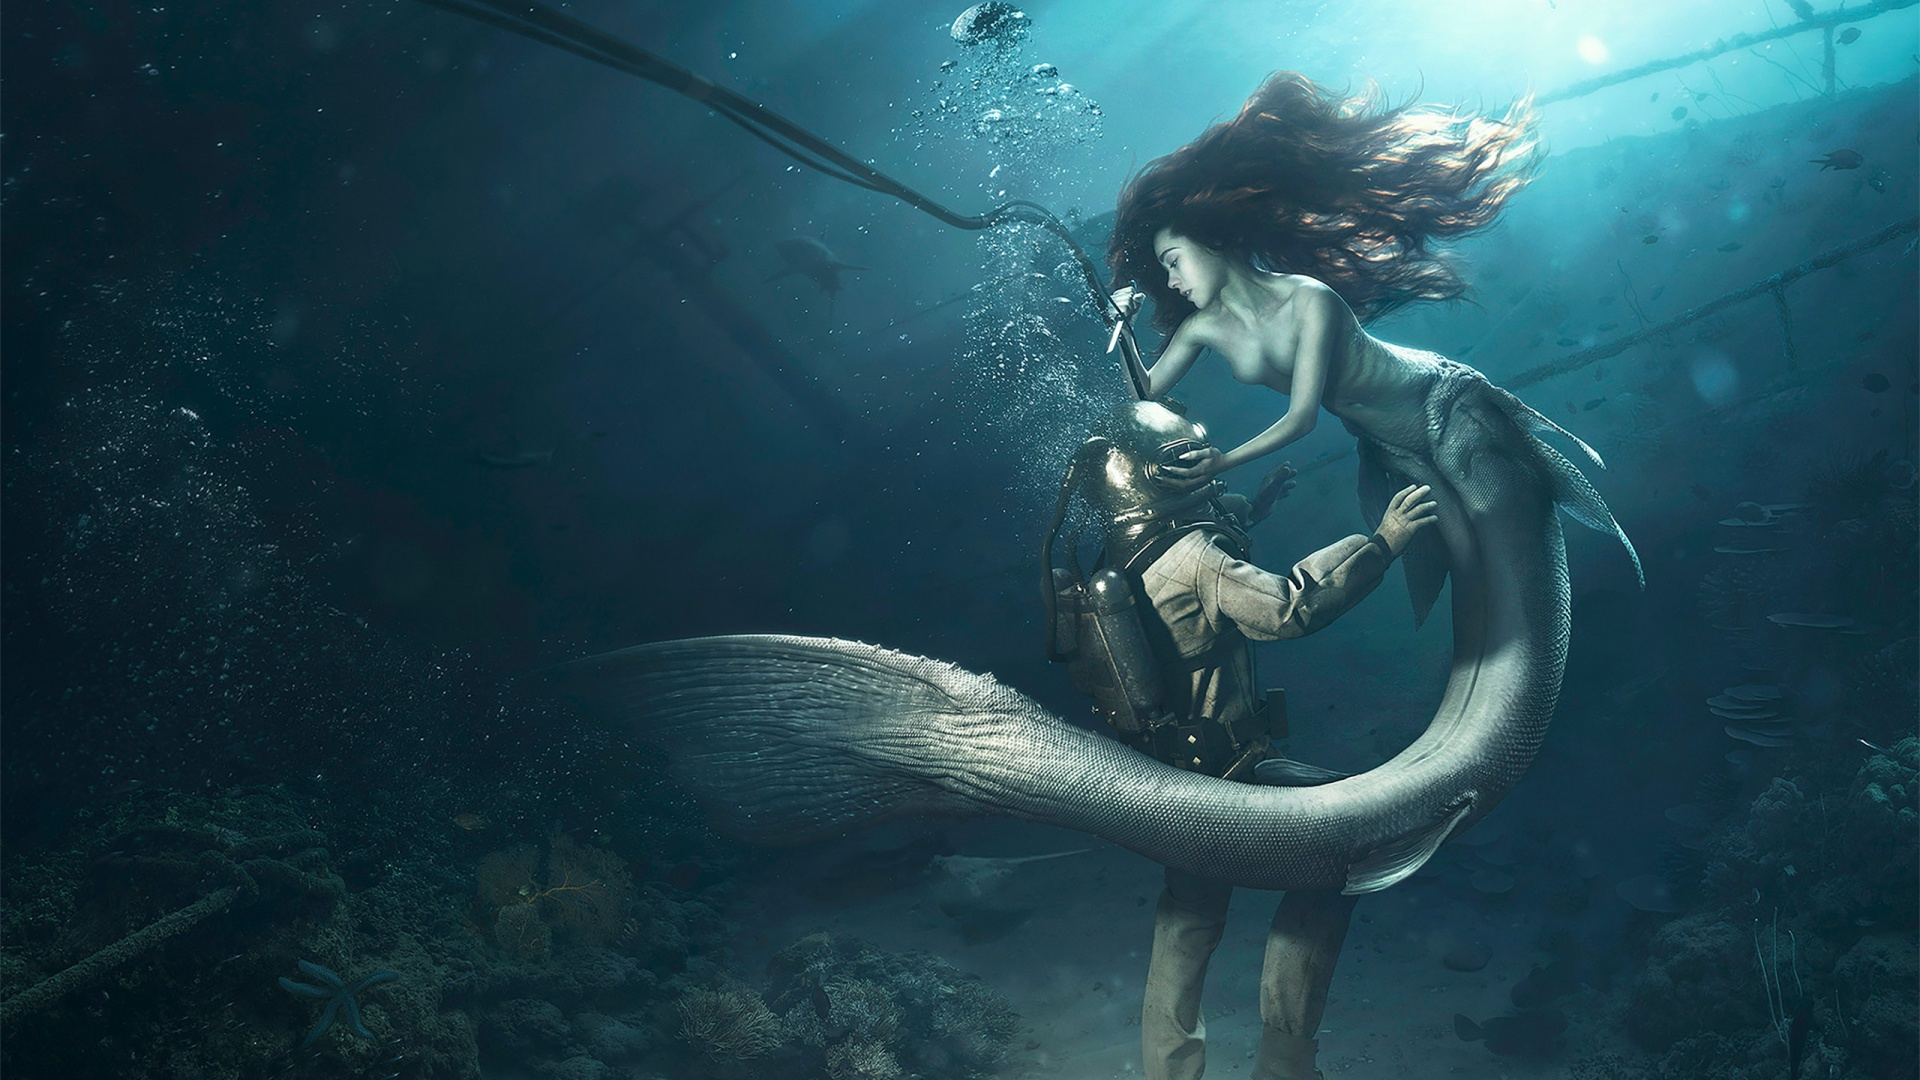 diver and the mermaid wallpapers in jpg format for free download